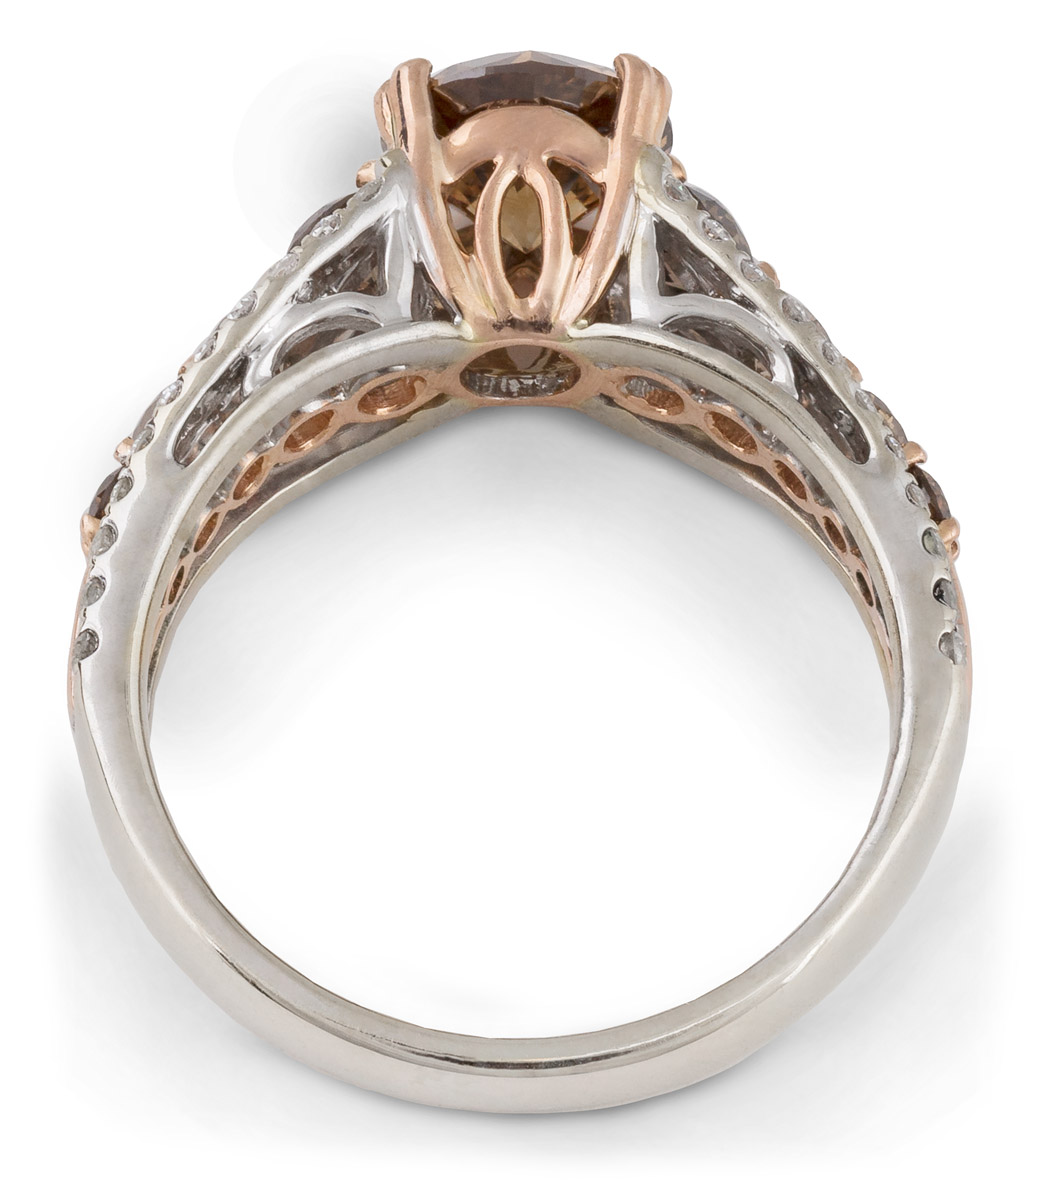 Chocolate Diamond Ring with White Diamond Accents - Top